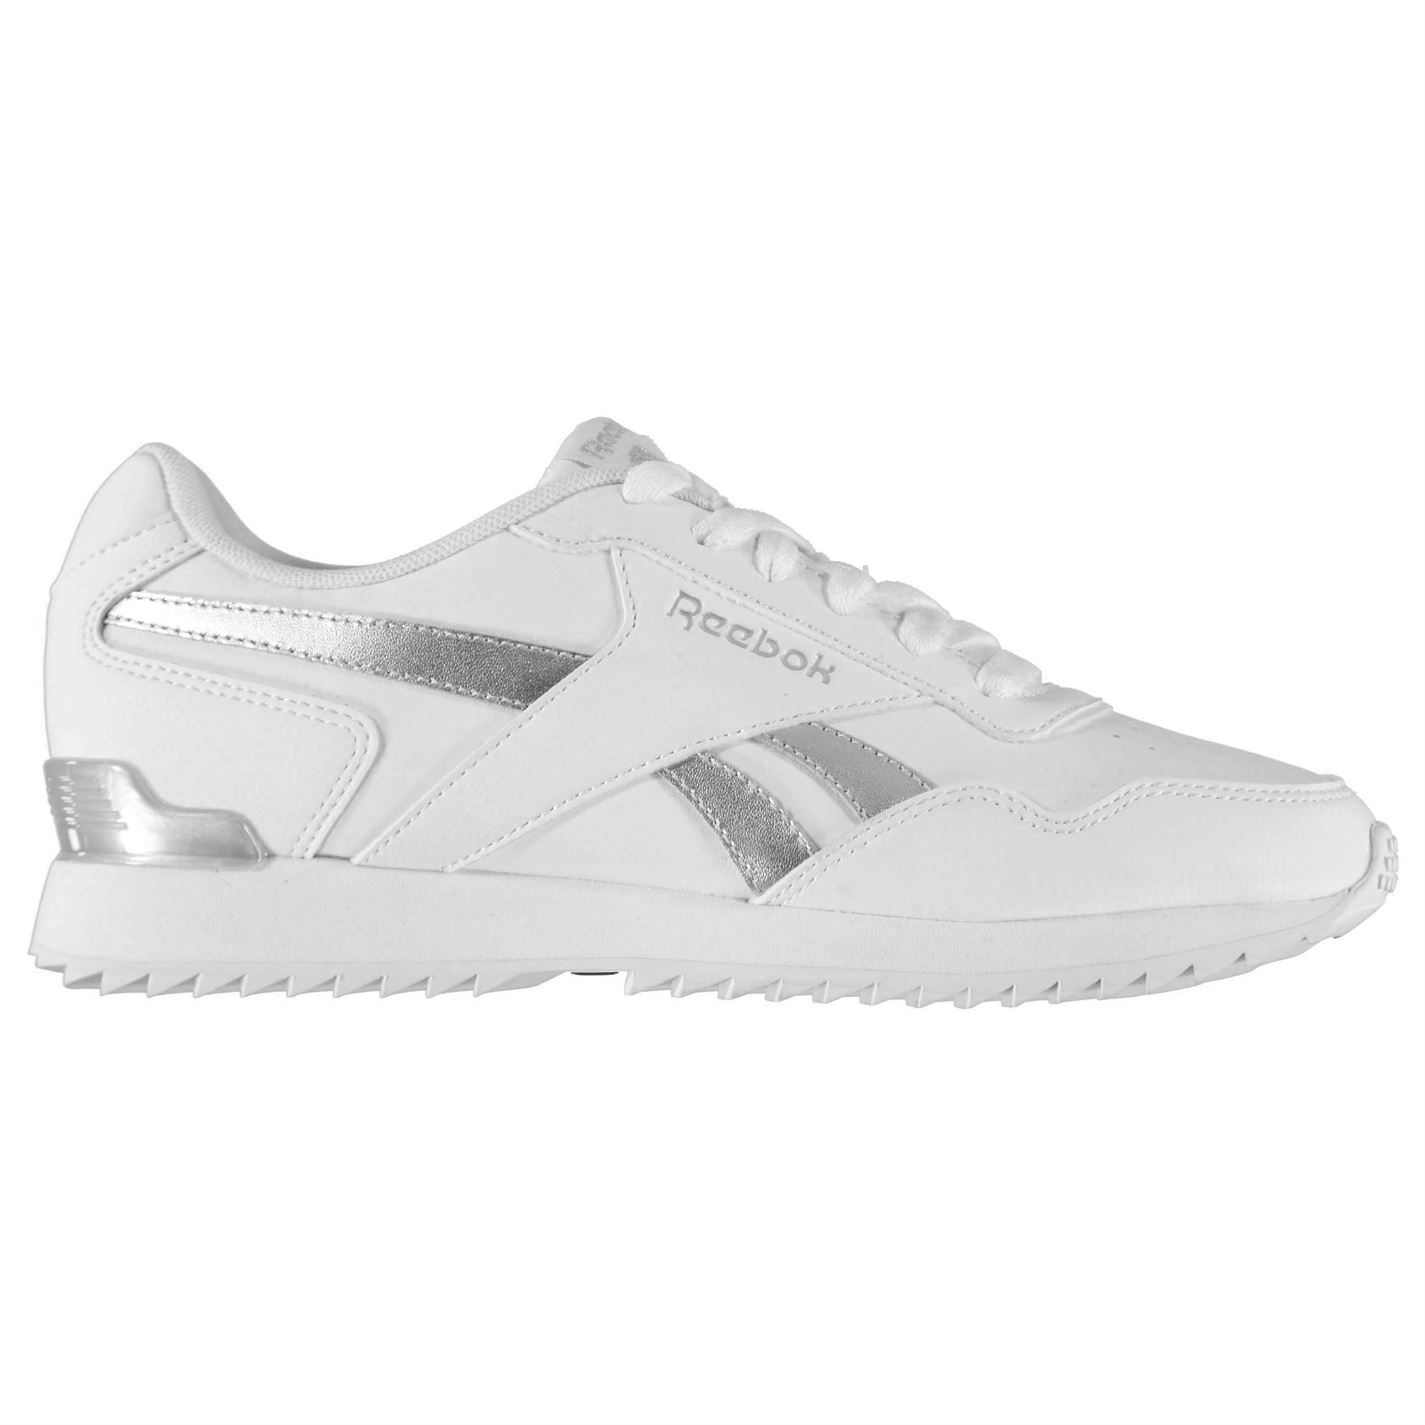 Reebok-Womens-Royal-Glide-Ripple-Clip-Trainers-Shoes-